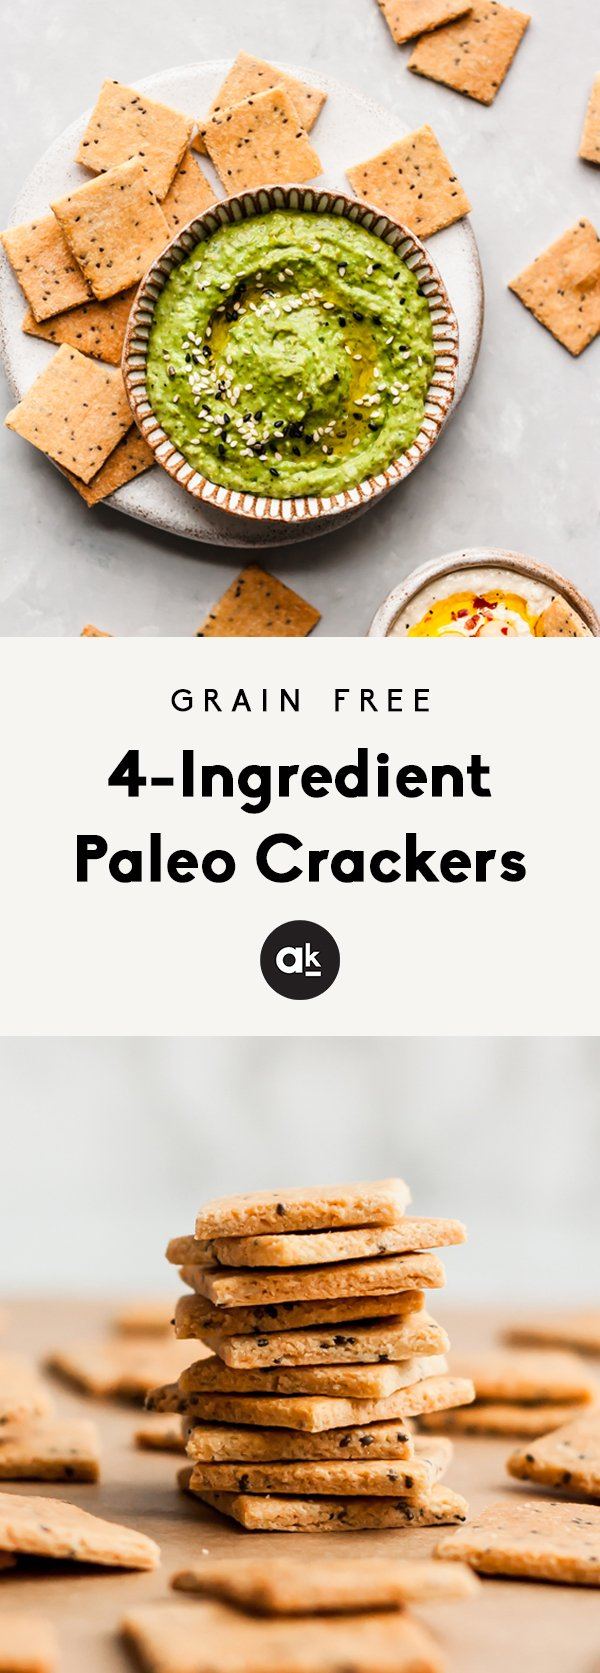 Paleo crackers made with almond flour! You'll only need 4 ingredients for these deliciously crispy protein-packed low carb crackers. Plus we've got 5 different flavor variations for you to try!